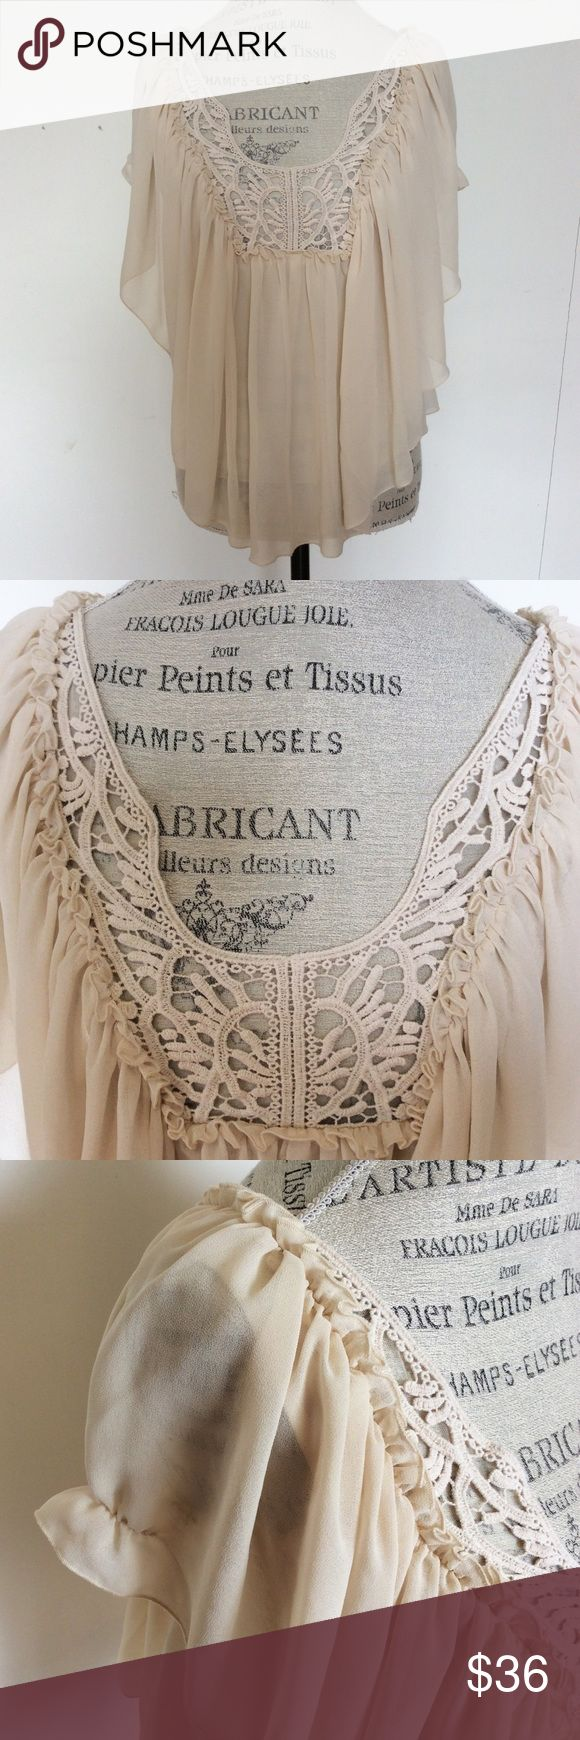 Victorias Secret Beige Ruffle Crochet Top XS Size Extra Small XS. Excellent condition. Color is even all the way through the shirt even though it looks darker in some places in the photos. Tags: moda international, peasant costume, Gypsy, boho, smock top, shirt, batwing, dolman sleeve, lace, crochet, free people. Save when you bundle! :) Moda International Tops Blouses